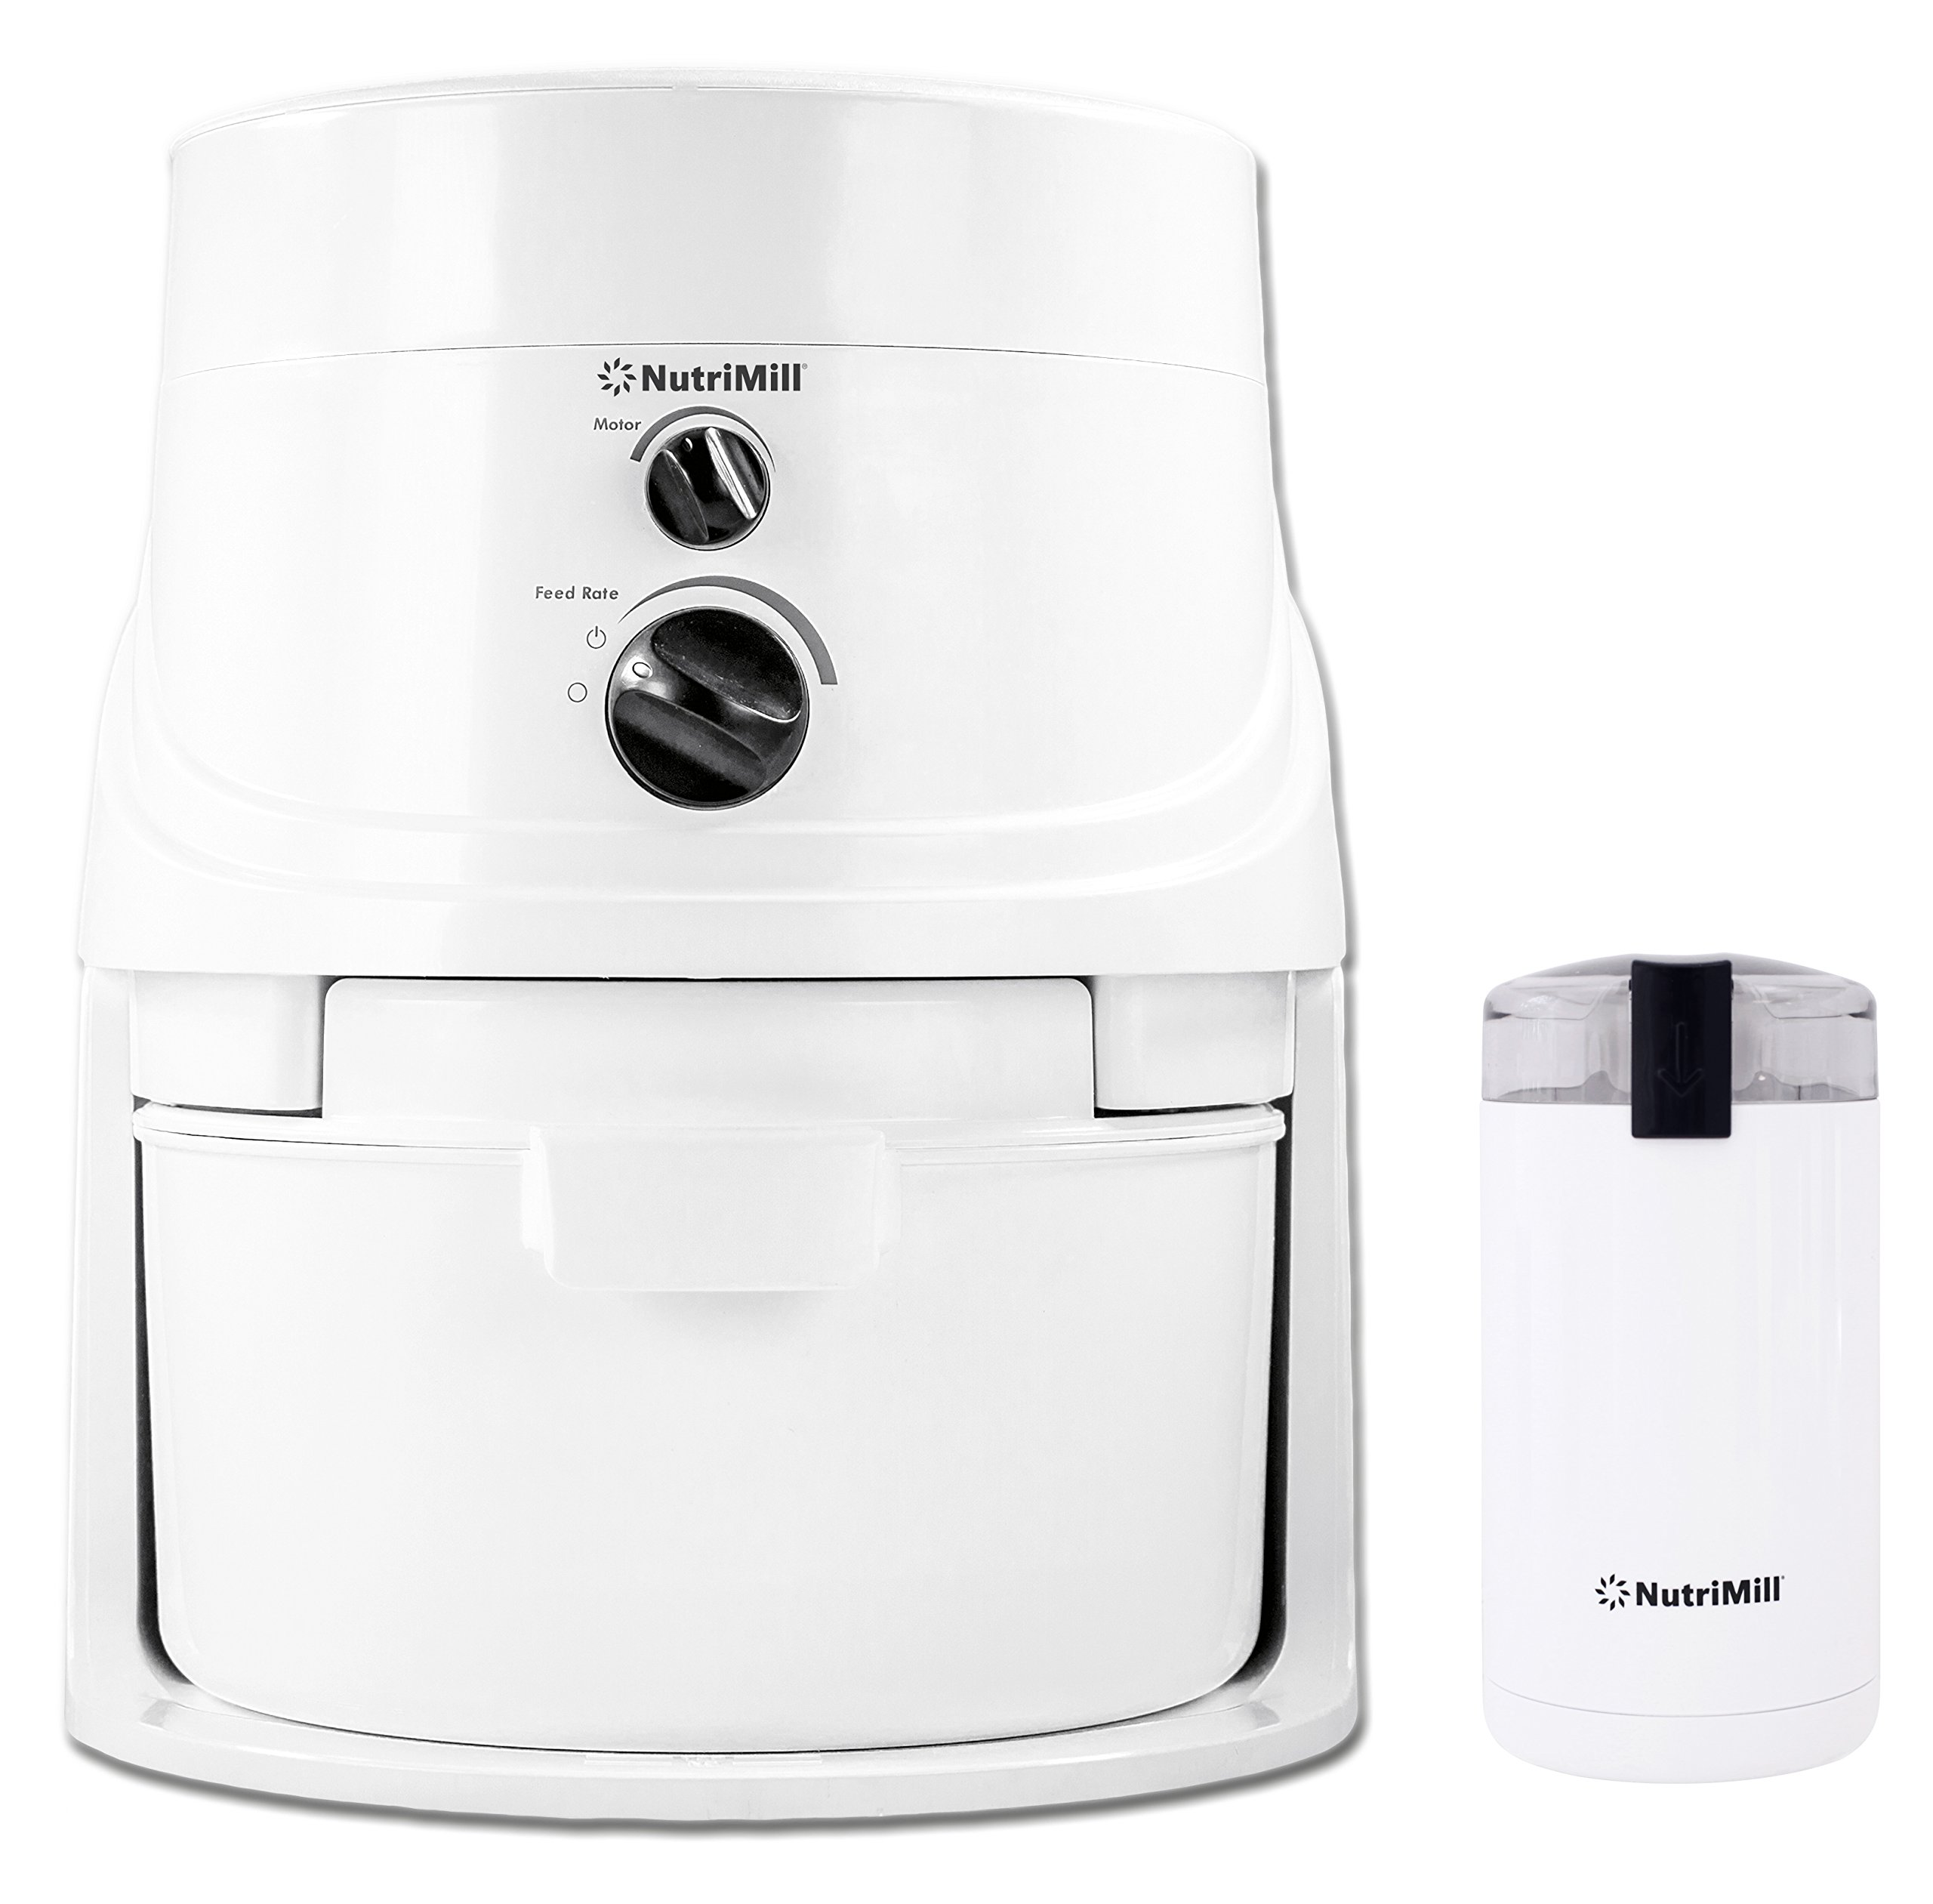 LEQUIP NutriMill Classic High-Speed Grain/Flour Mill with Mini Seed/Coffee Mill,White,20 Cup by L'EQUIP